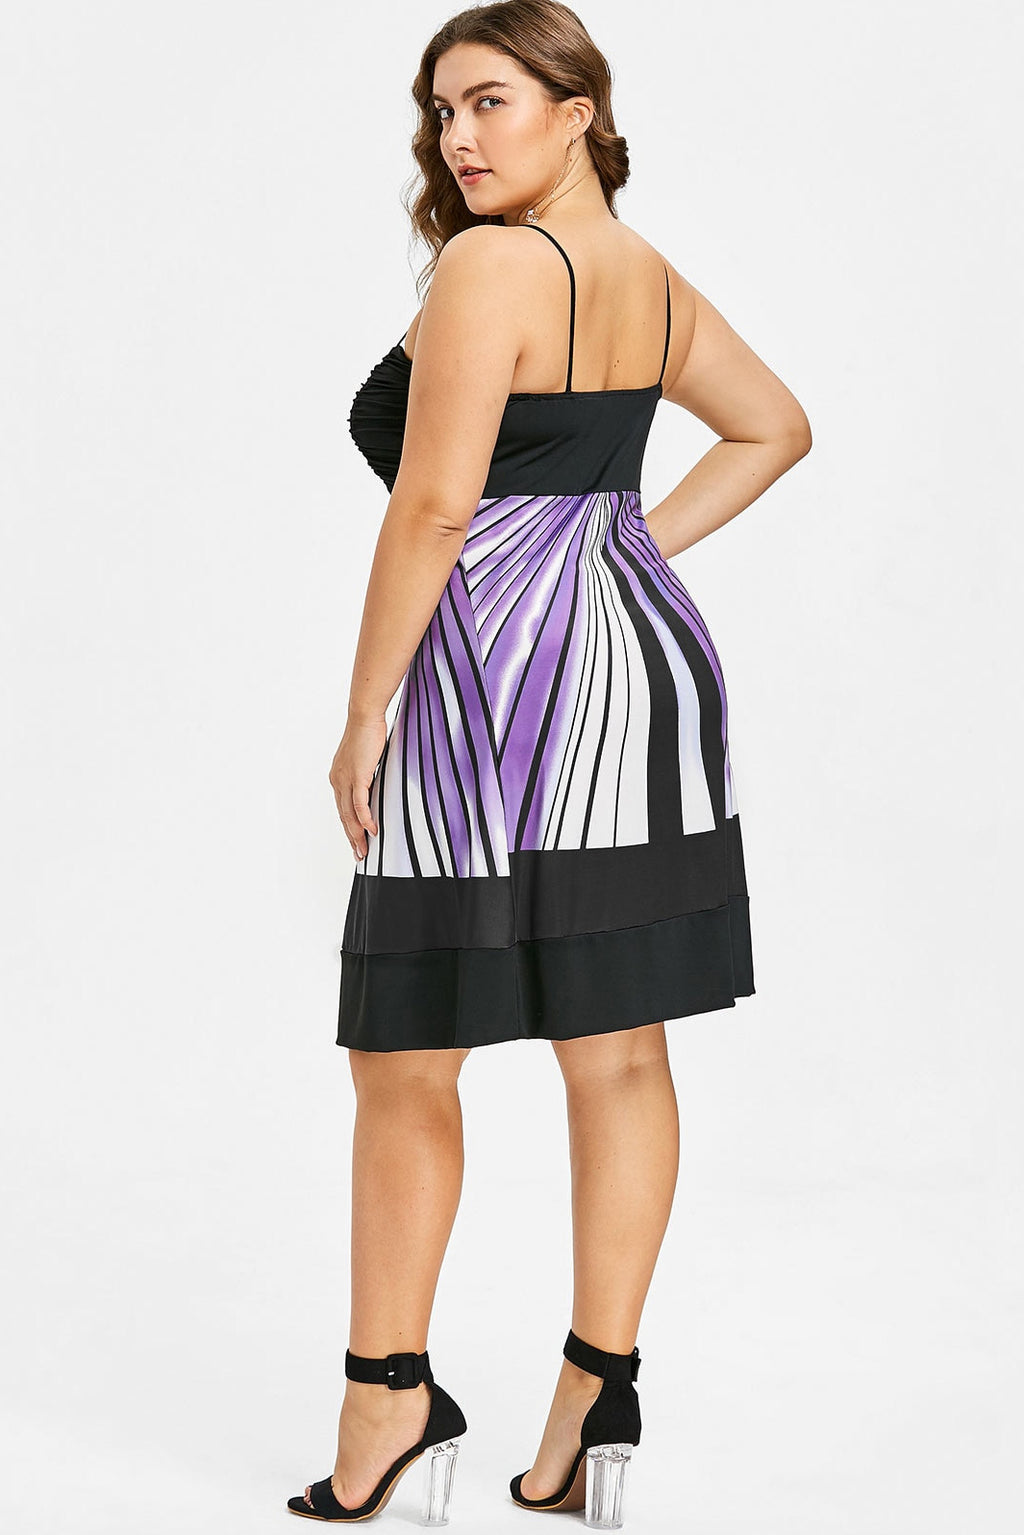 Plus Size Vibrant Ruched Spaghetti Strap Cocktail Dress